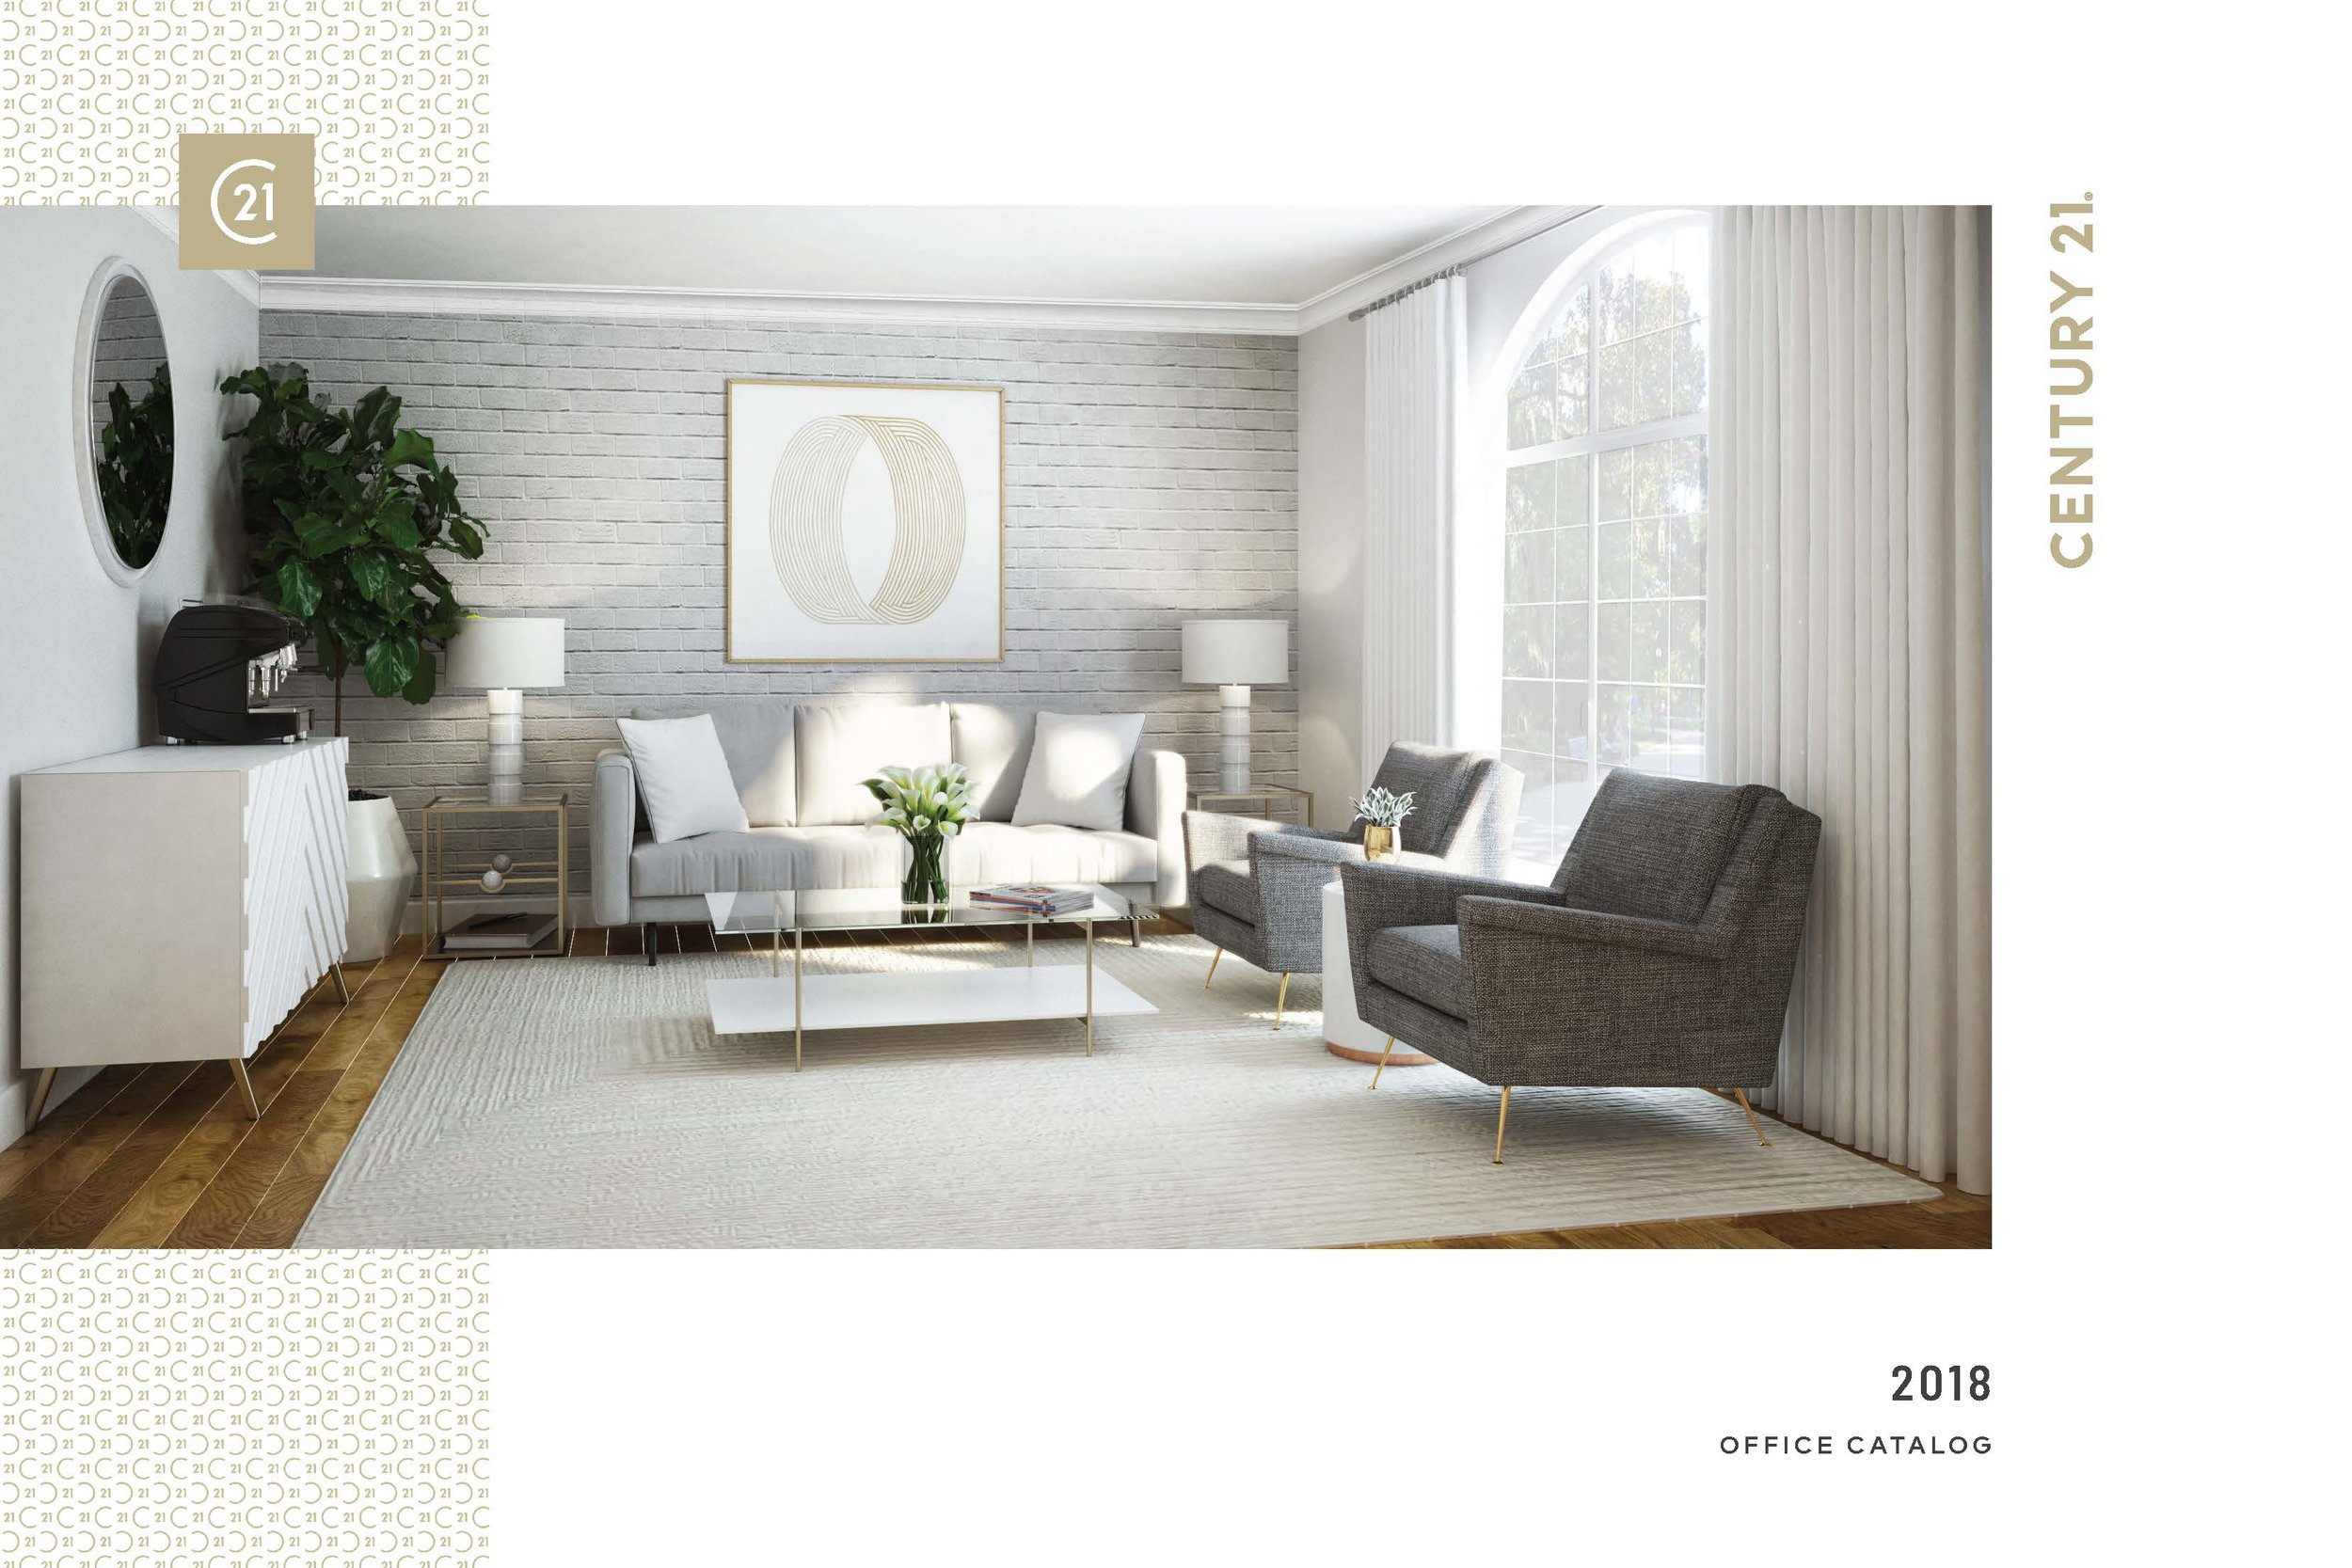 C21_InteriorDesign_Catalog_10.22 DS_CT comments 1.jpg